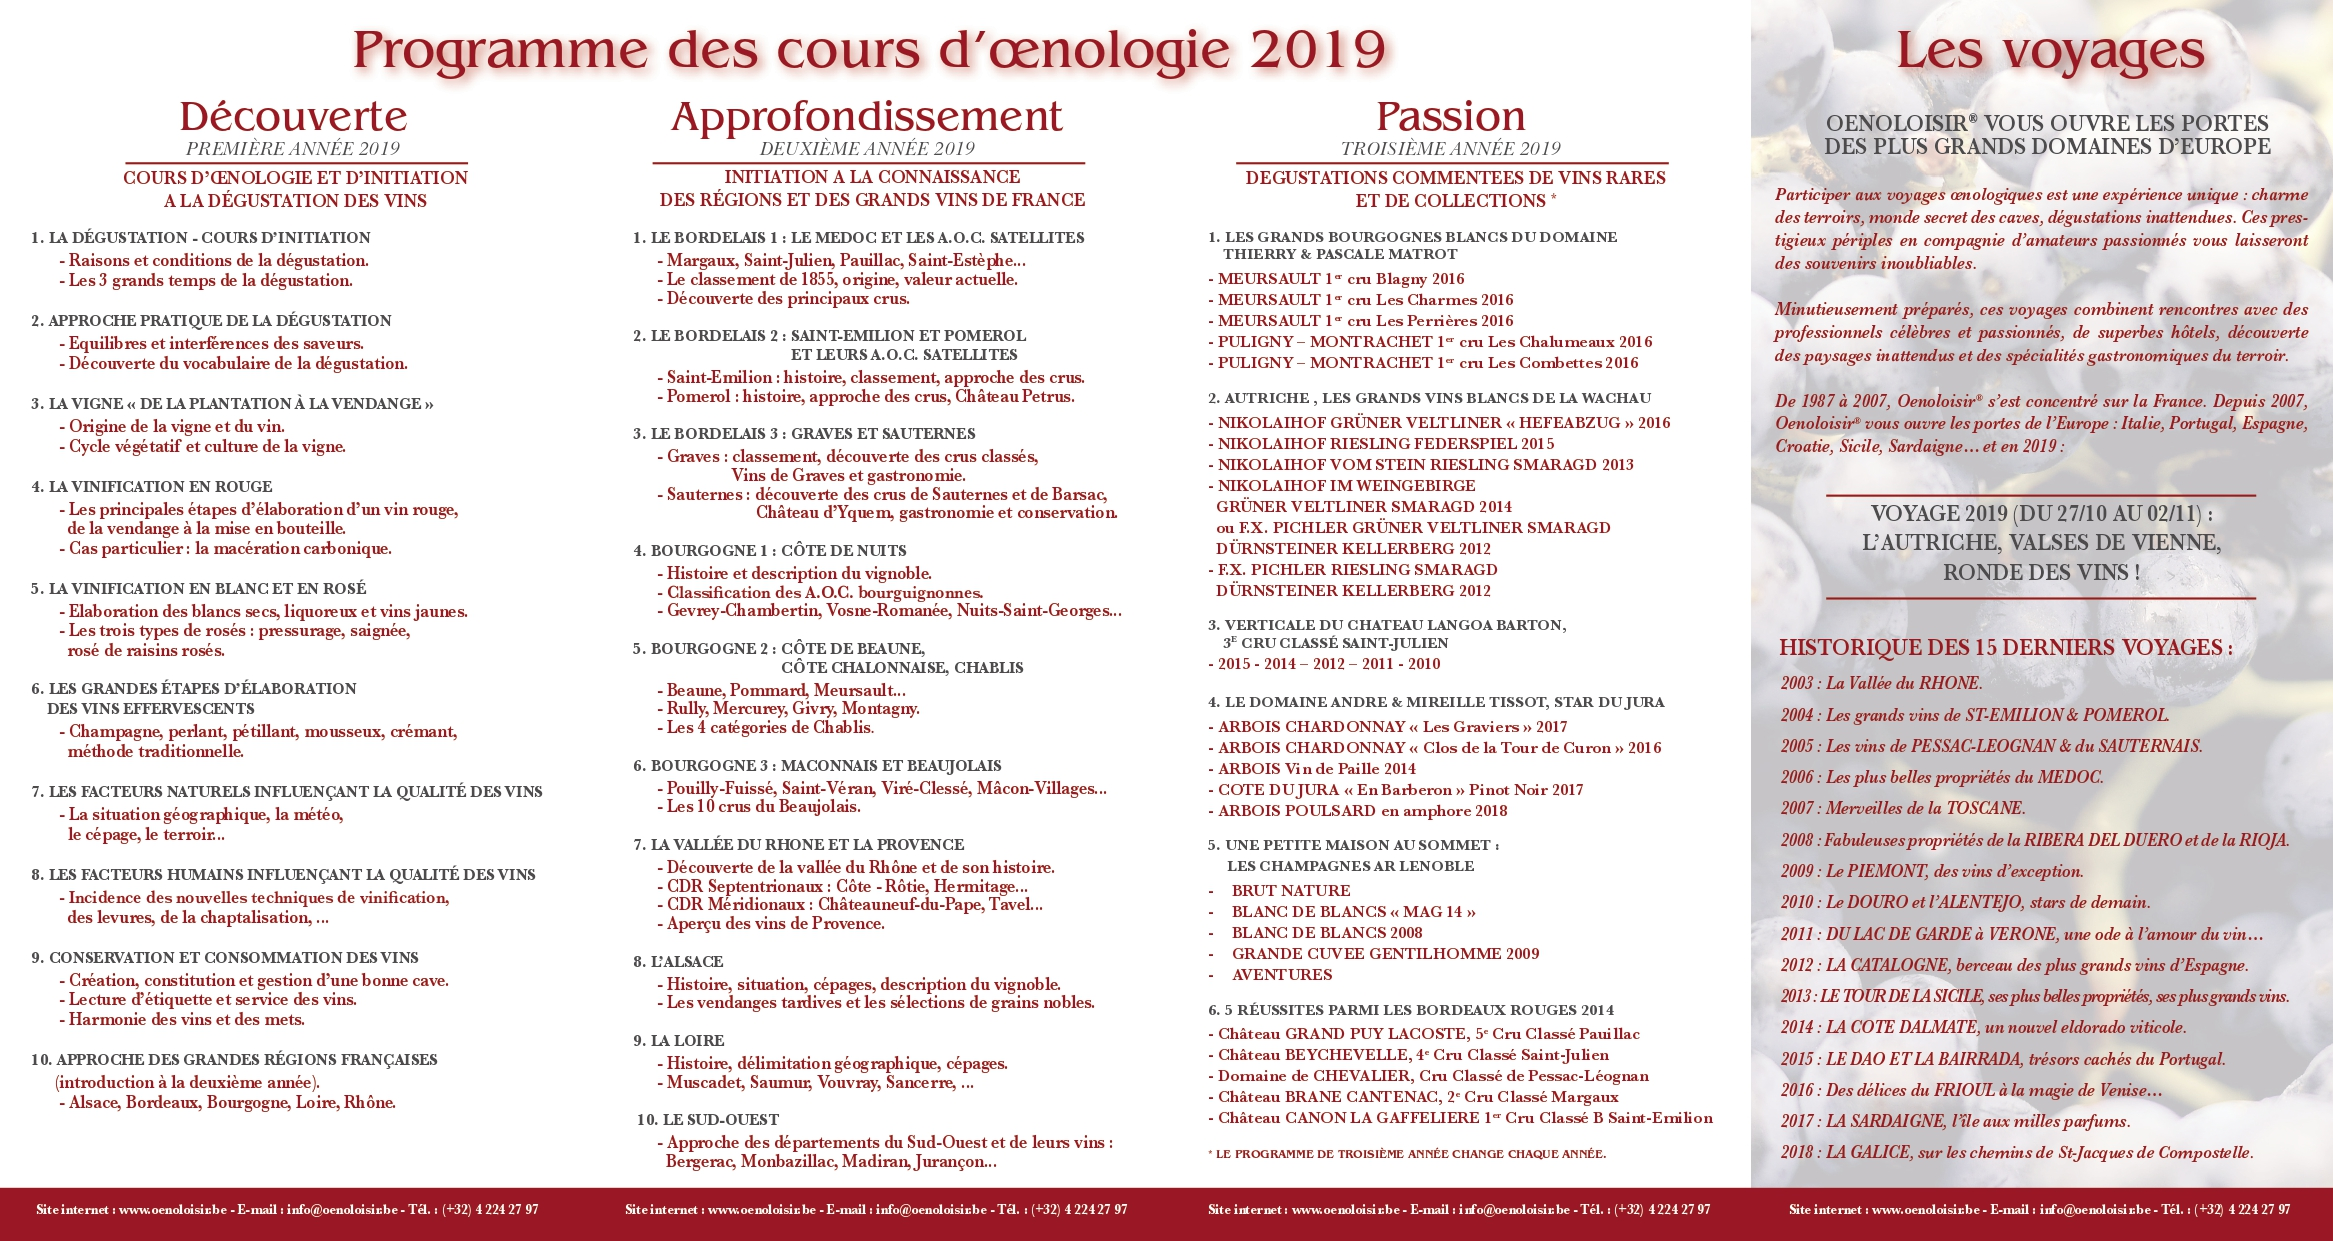 Programme oenoloisir 2019_pages-to-jpg-0002